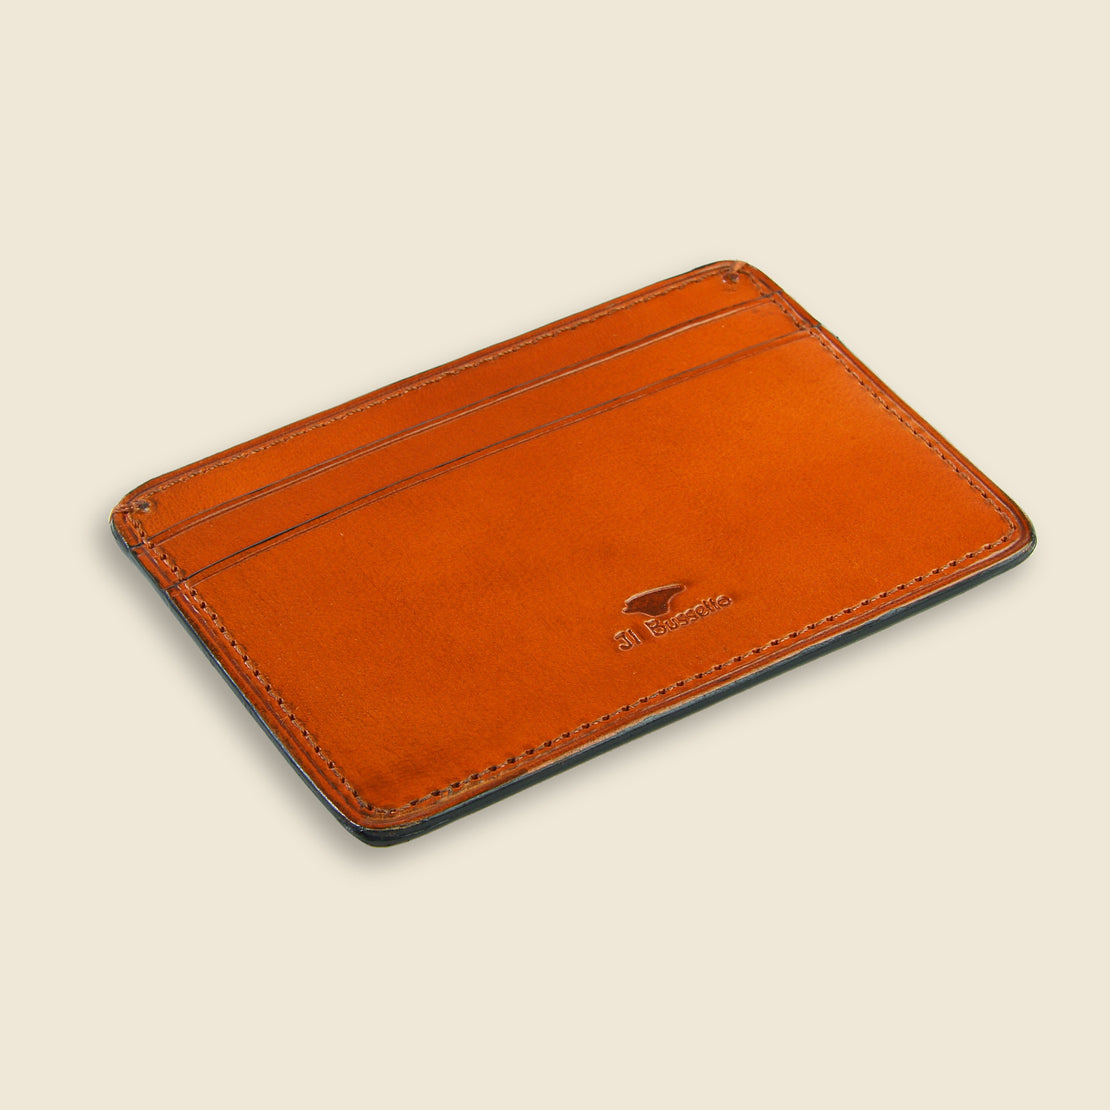 Credit Card Case - Orange - Il Bussetto - STAG Provisions - Accessories - Wallets